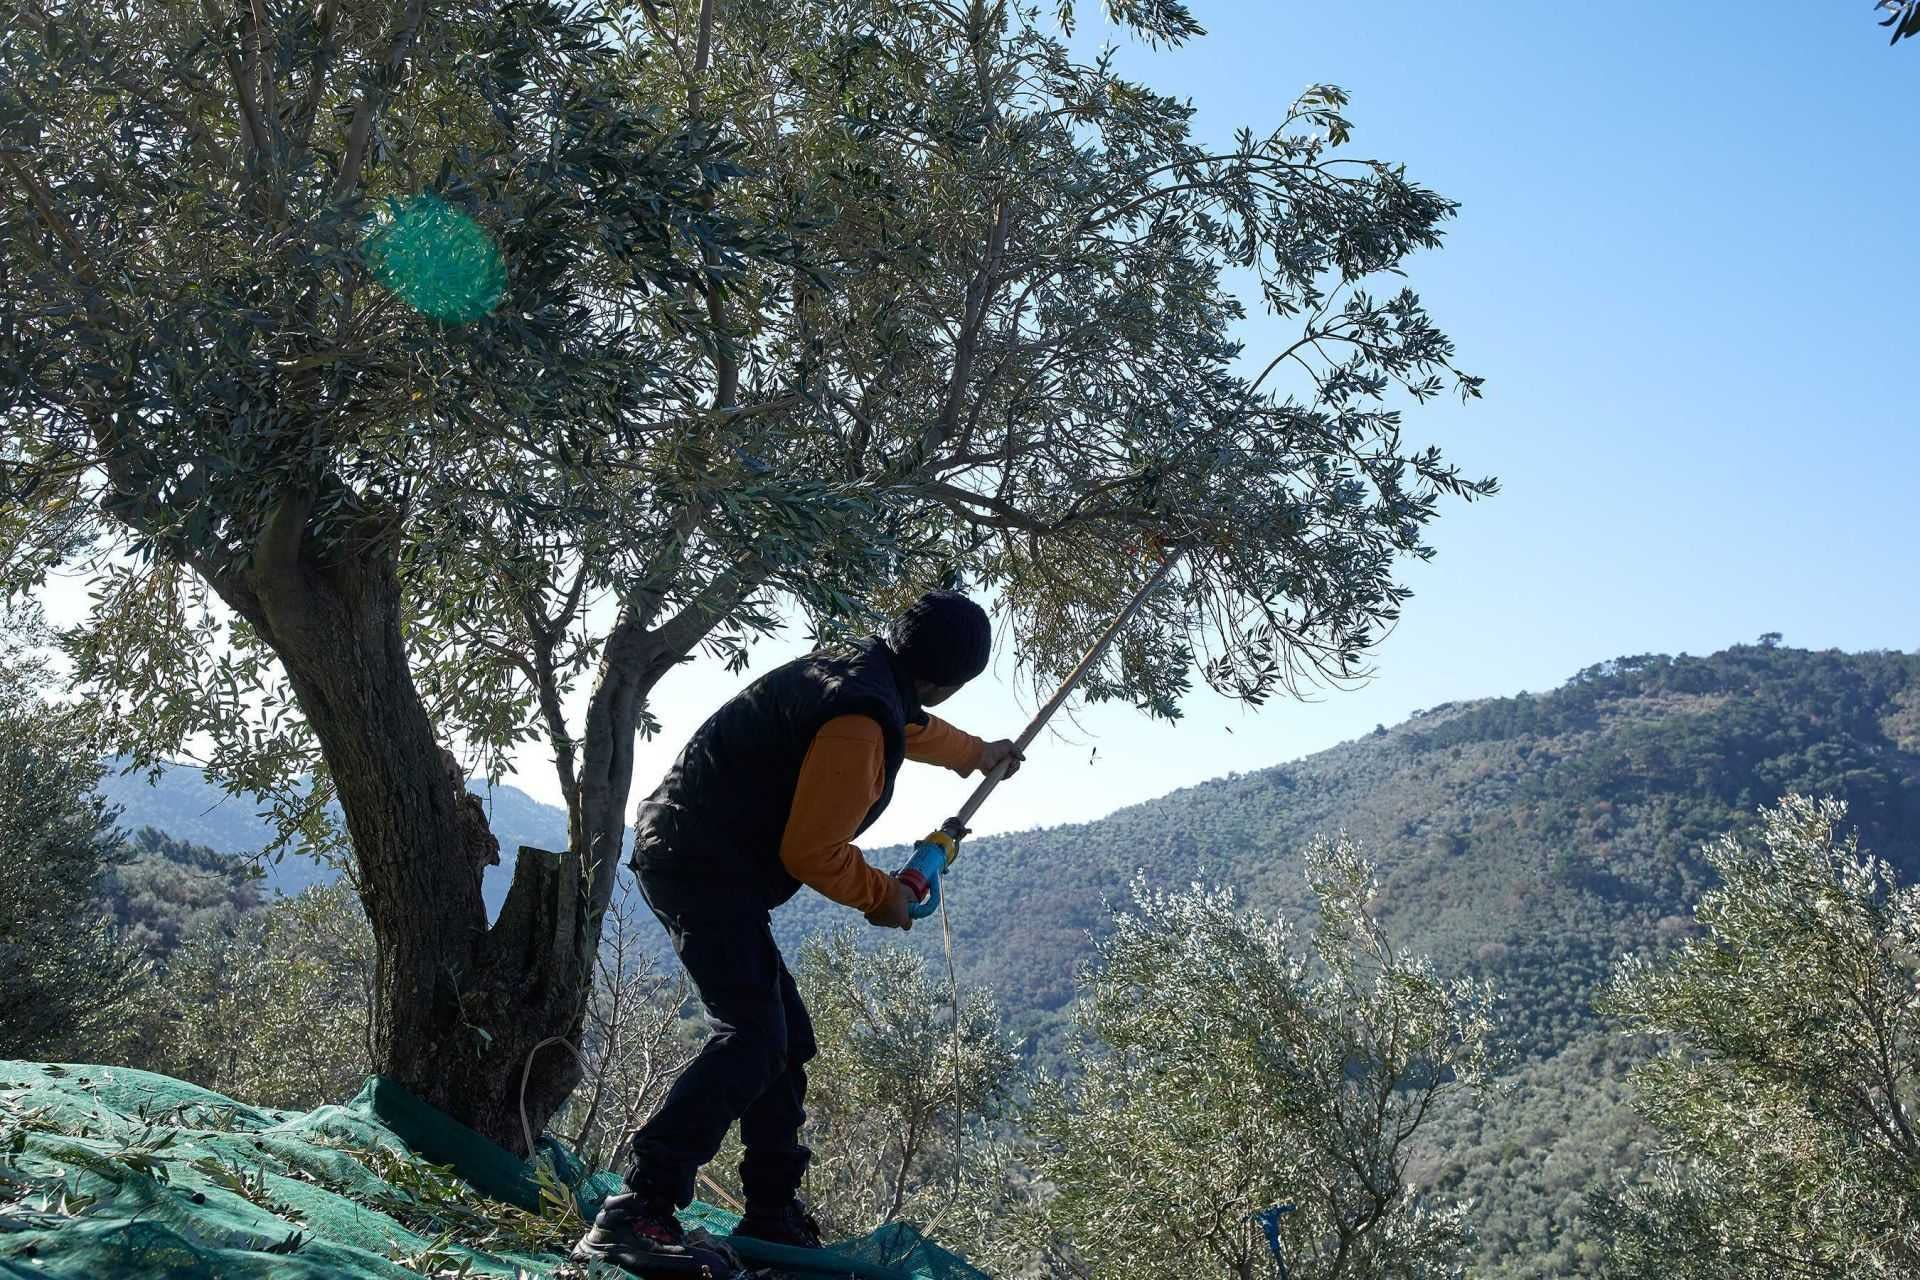 europe-competitions-the-best-olive-oils-producers-across-greece-continue-to-celebrate-nyiooc-triumphs-olive-oil-times